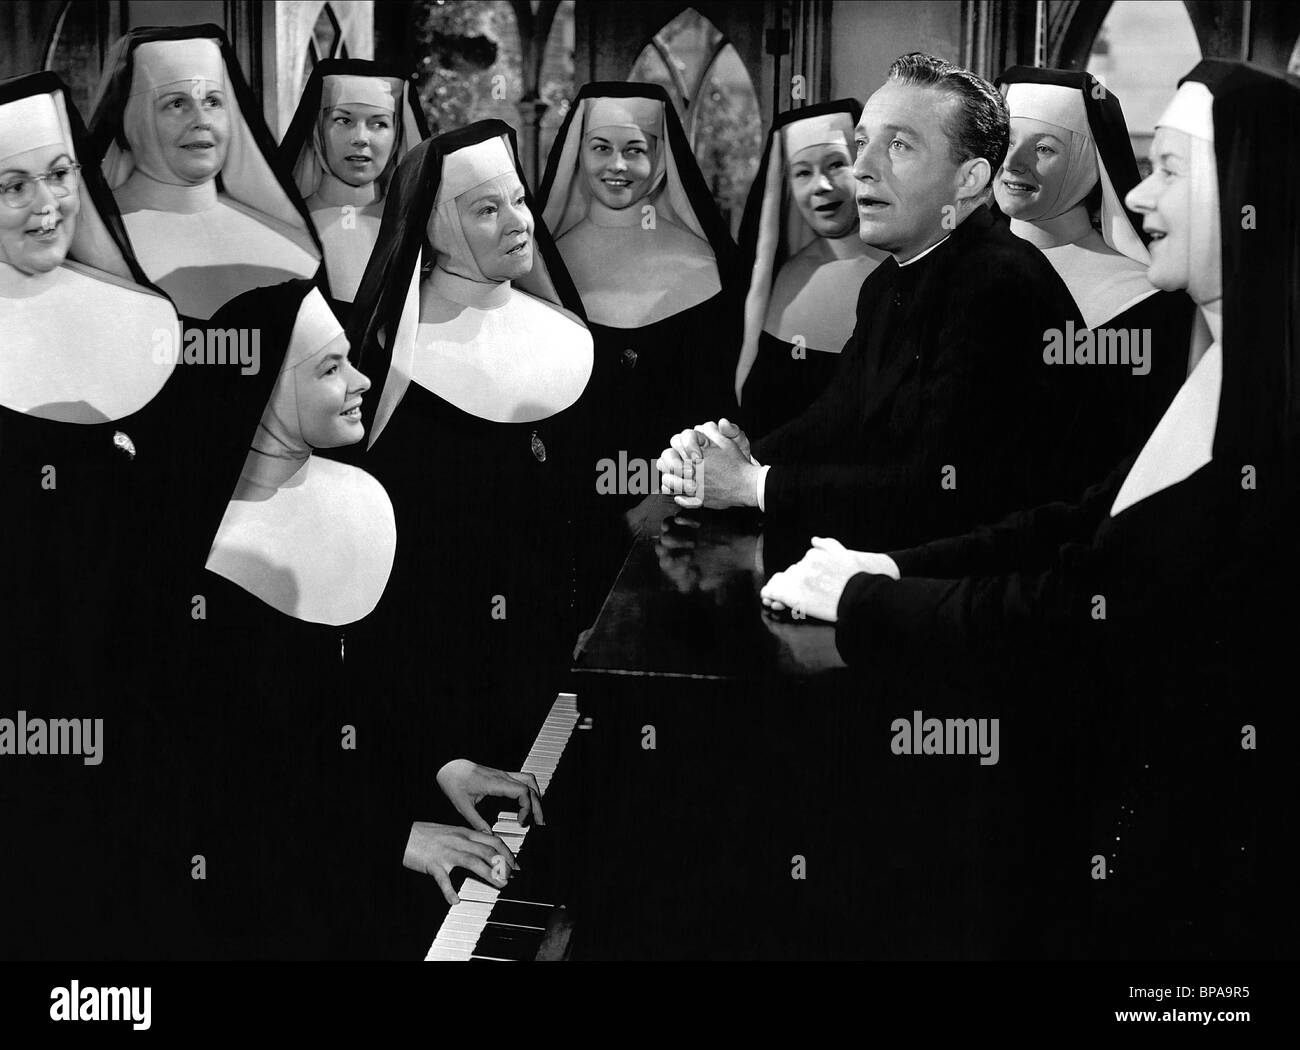 BING CROSBY THE BELLS OF ST. MARY'S (1945) - Stock Image